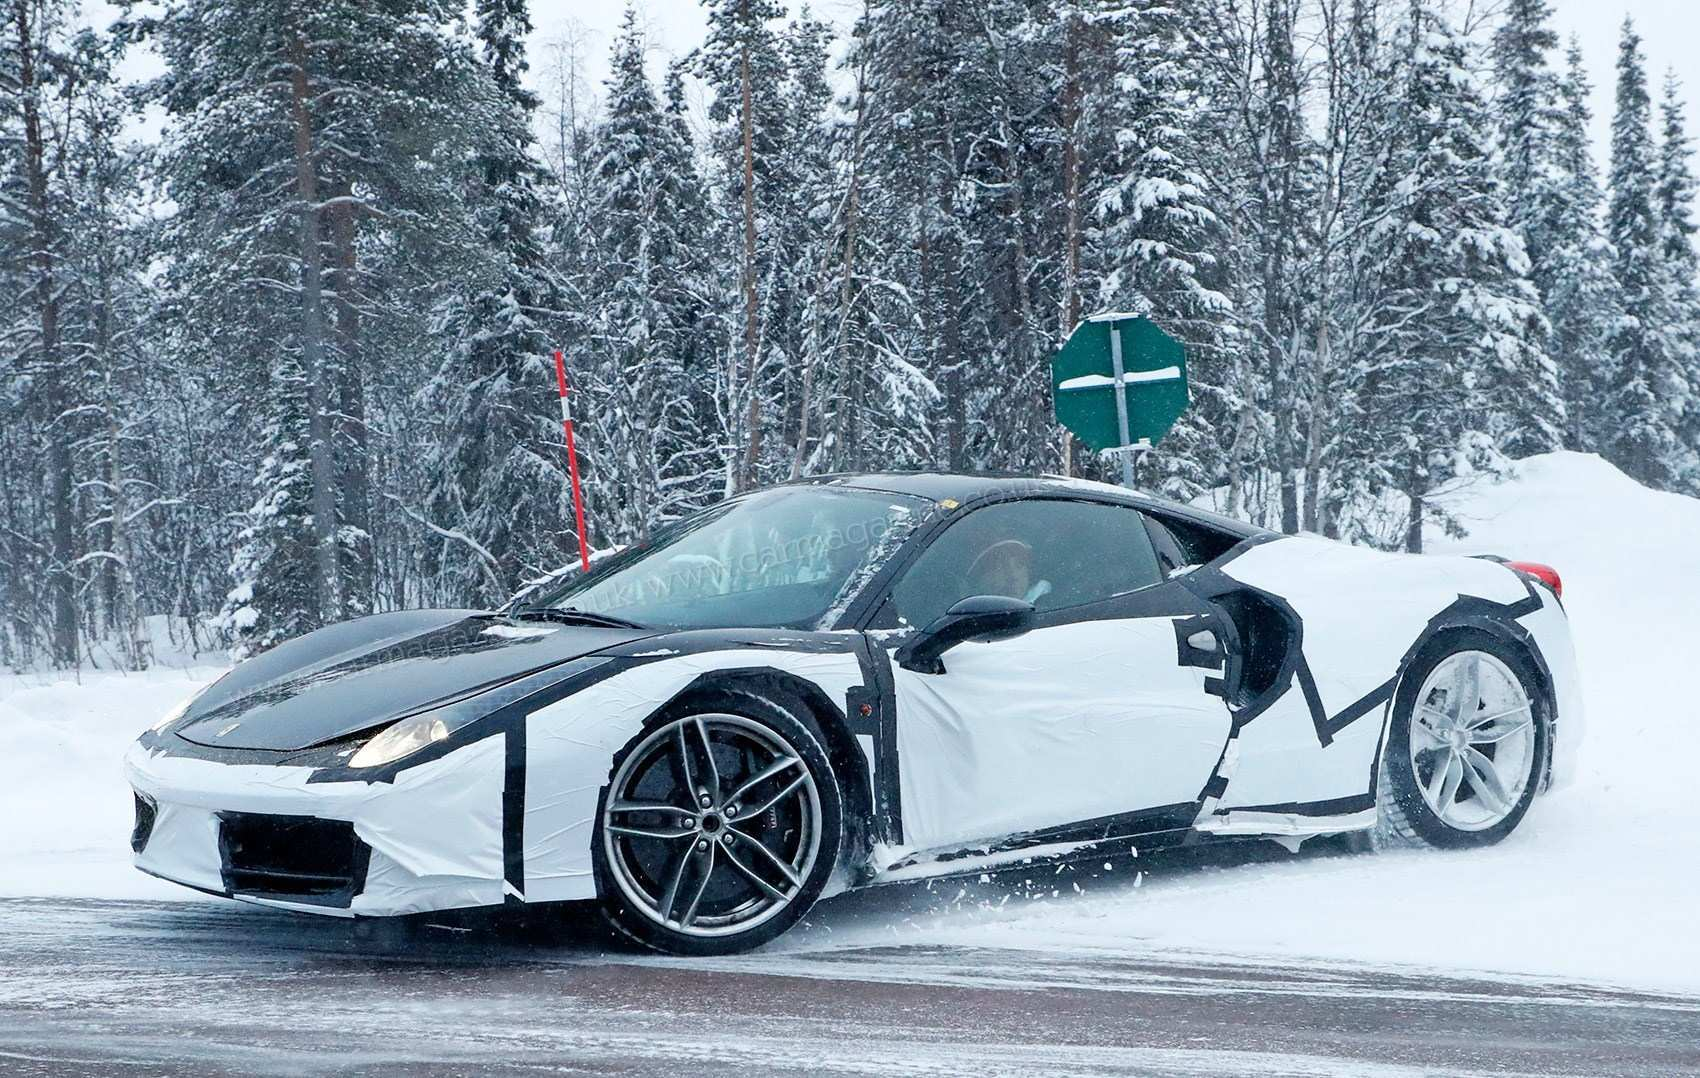 21 Gallery of 2020 Ferrari 488 Spider For Sale Pricing for 2020 Ferrari 488 Spider For Sale